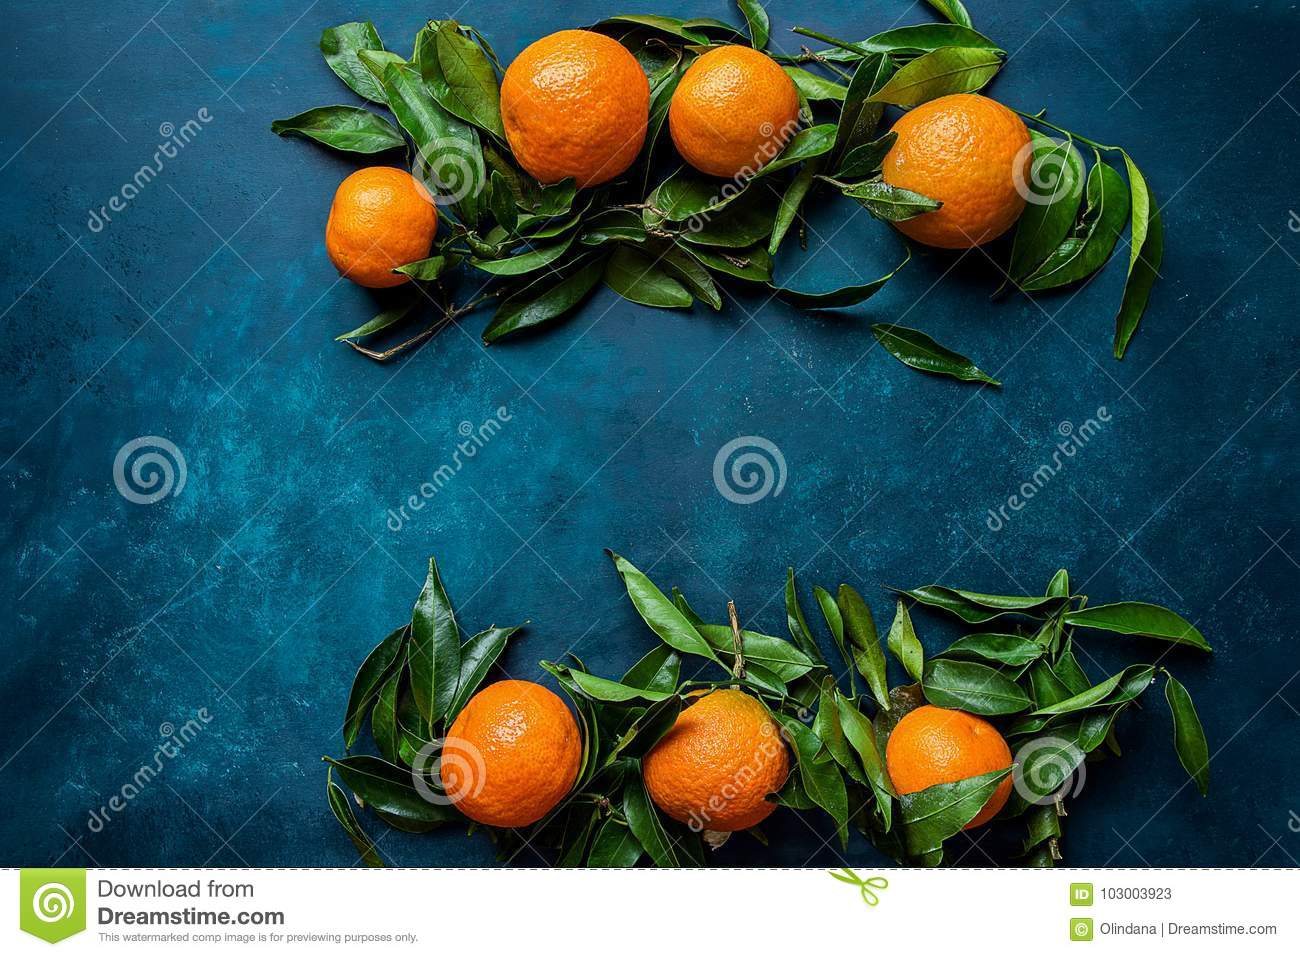 vibrant orange tangerines on branches green leaves arranged in composition border frame on dark blue background